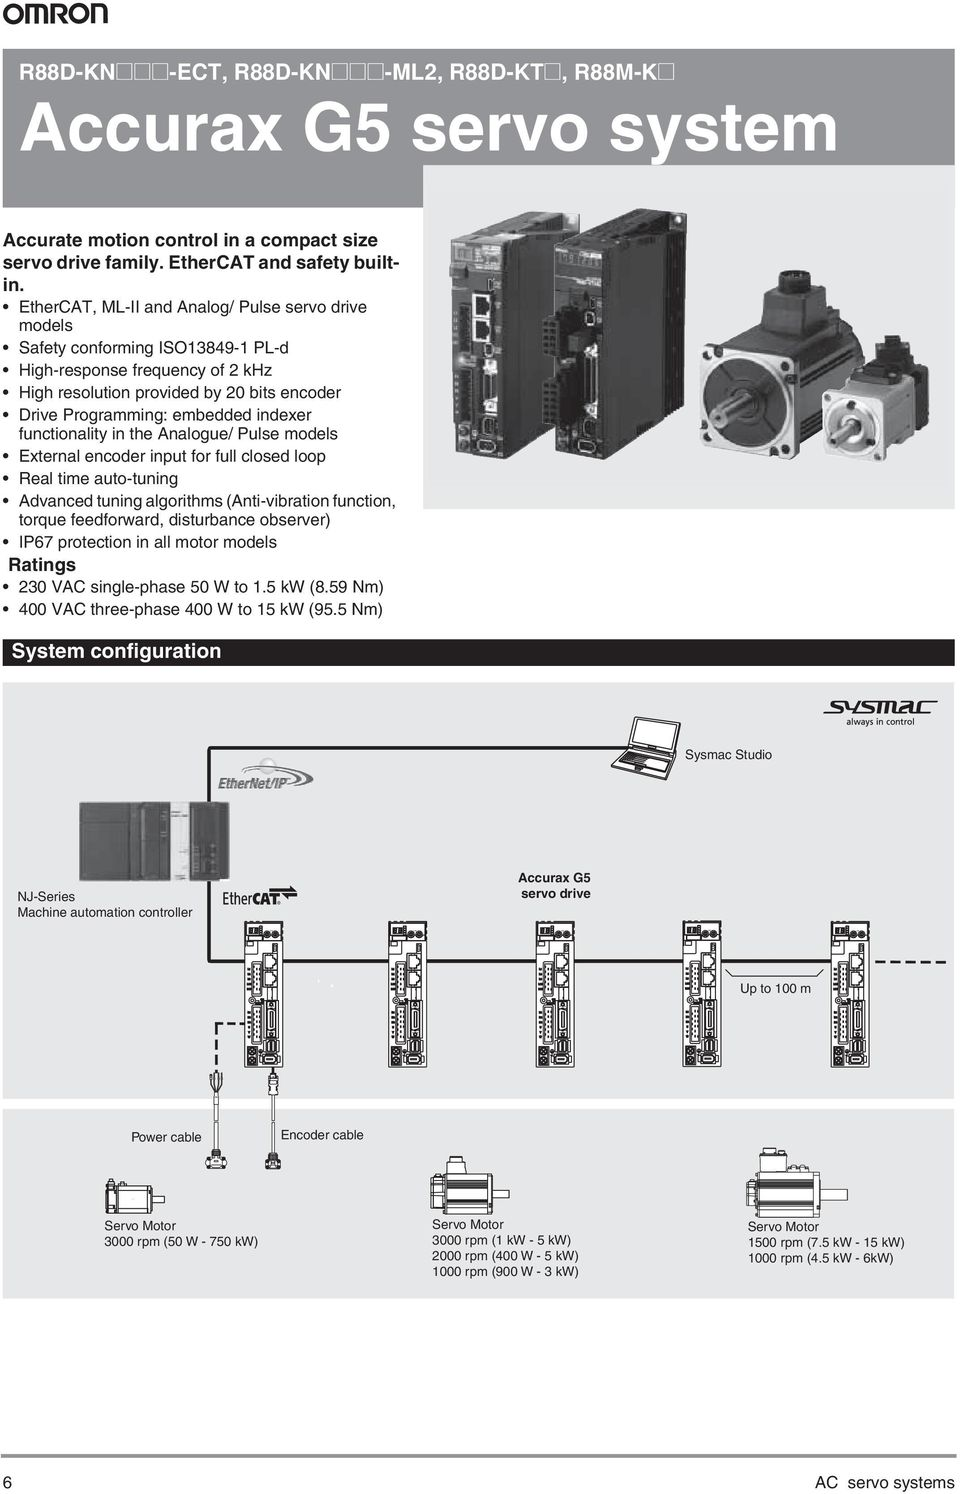 Accurax G5 Servo System Pdf Pulse Generator Functionality In The Analogue Models External Encoder Input For Full Closed Loop Real Time